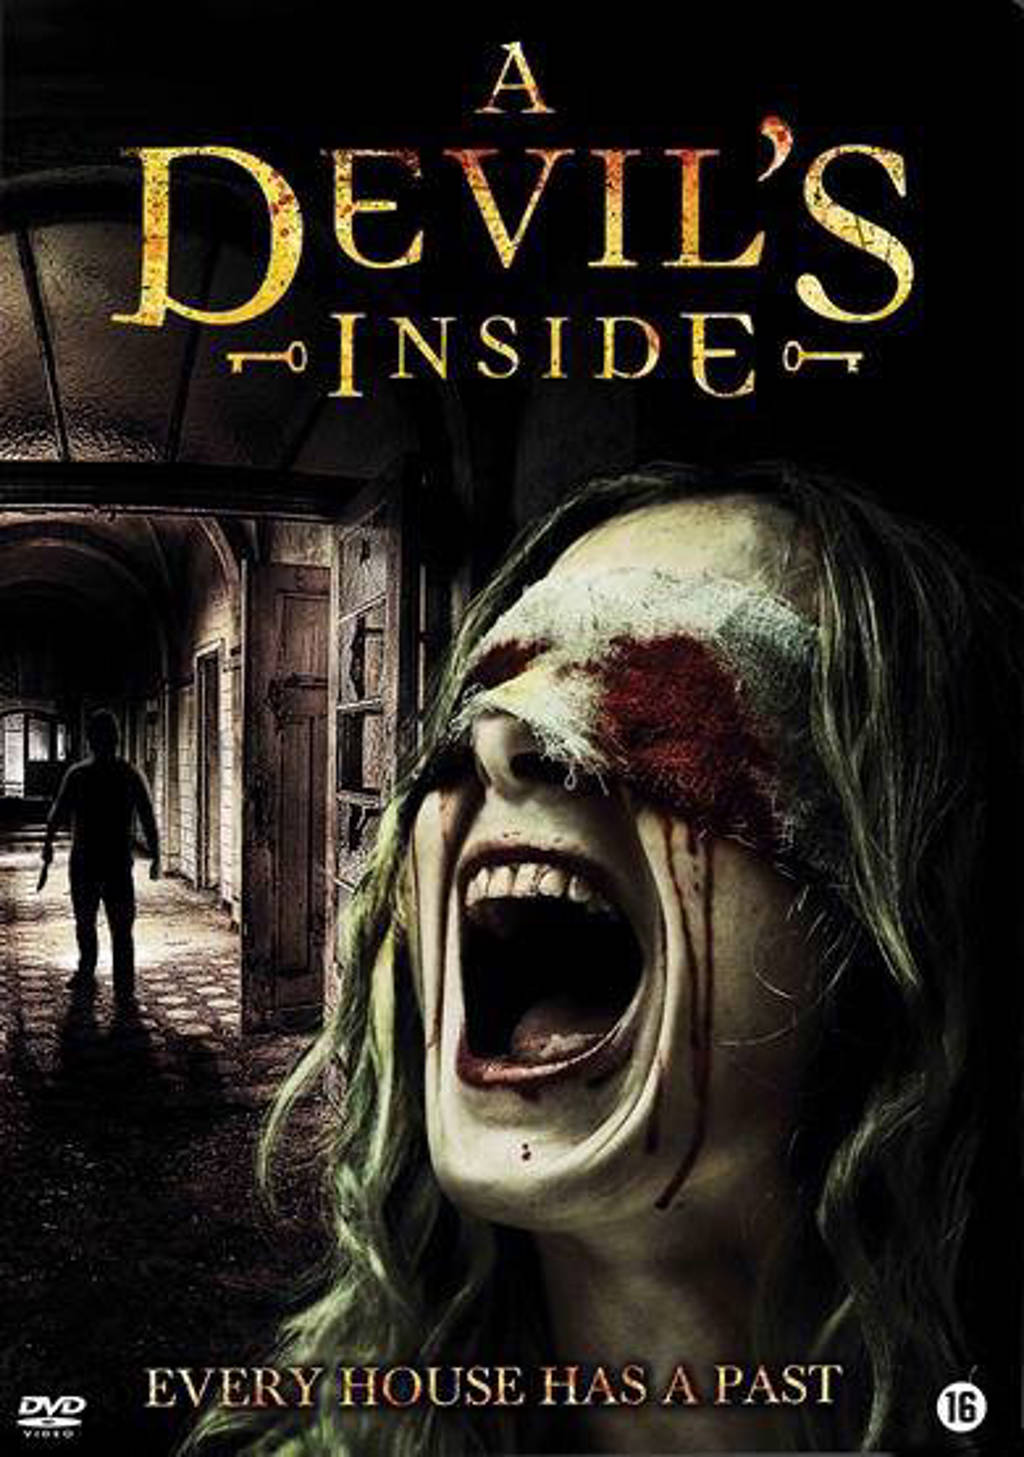 Devil's inside (DVD)